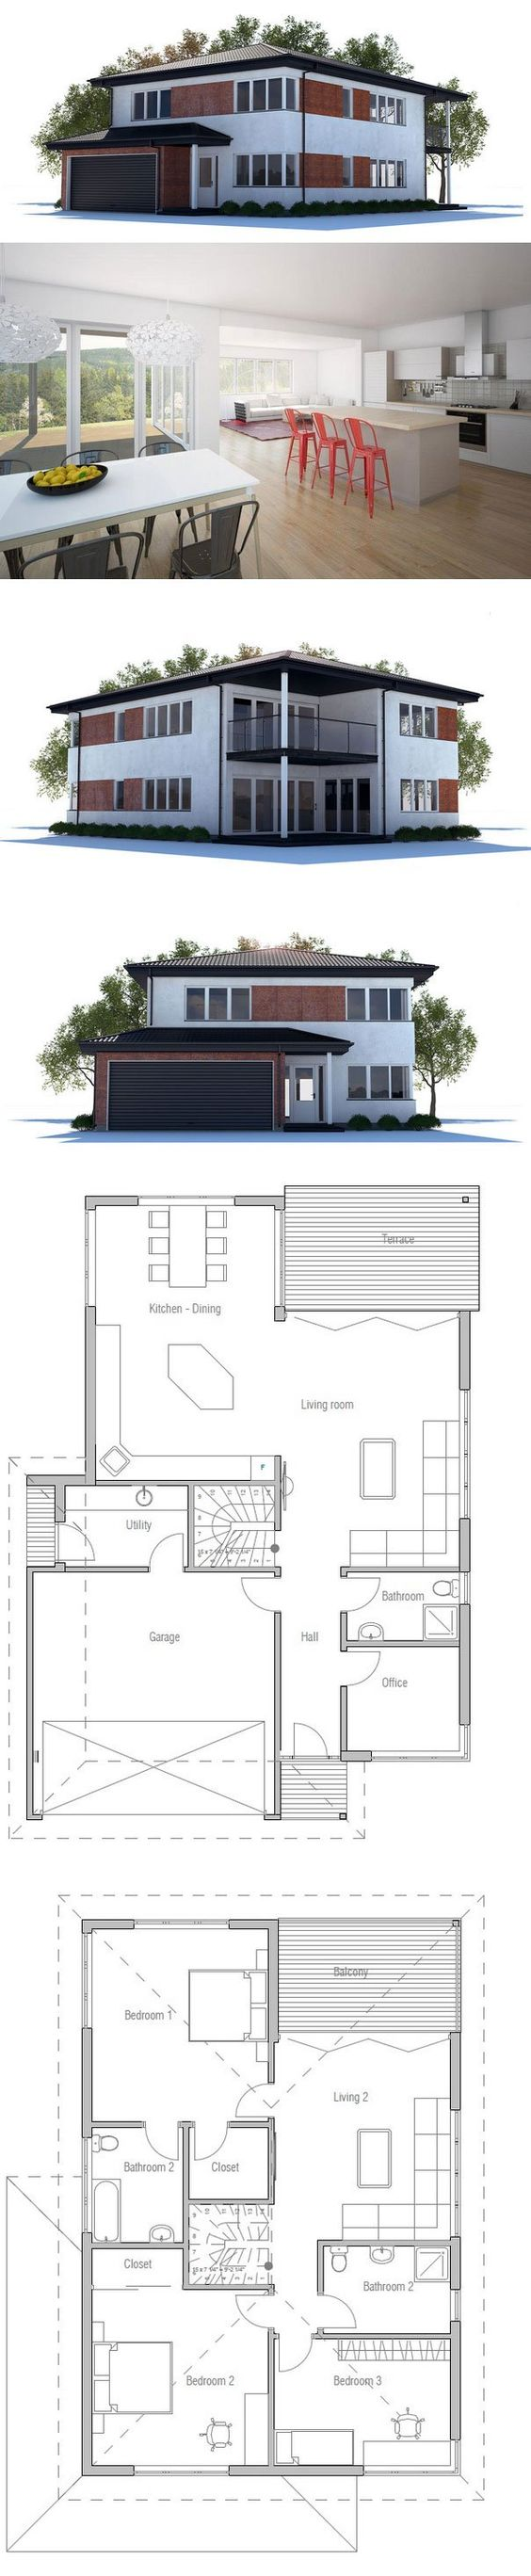 Modern house plan with large covered terrace and balcony for Big modern houses floor plans